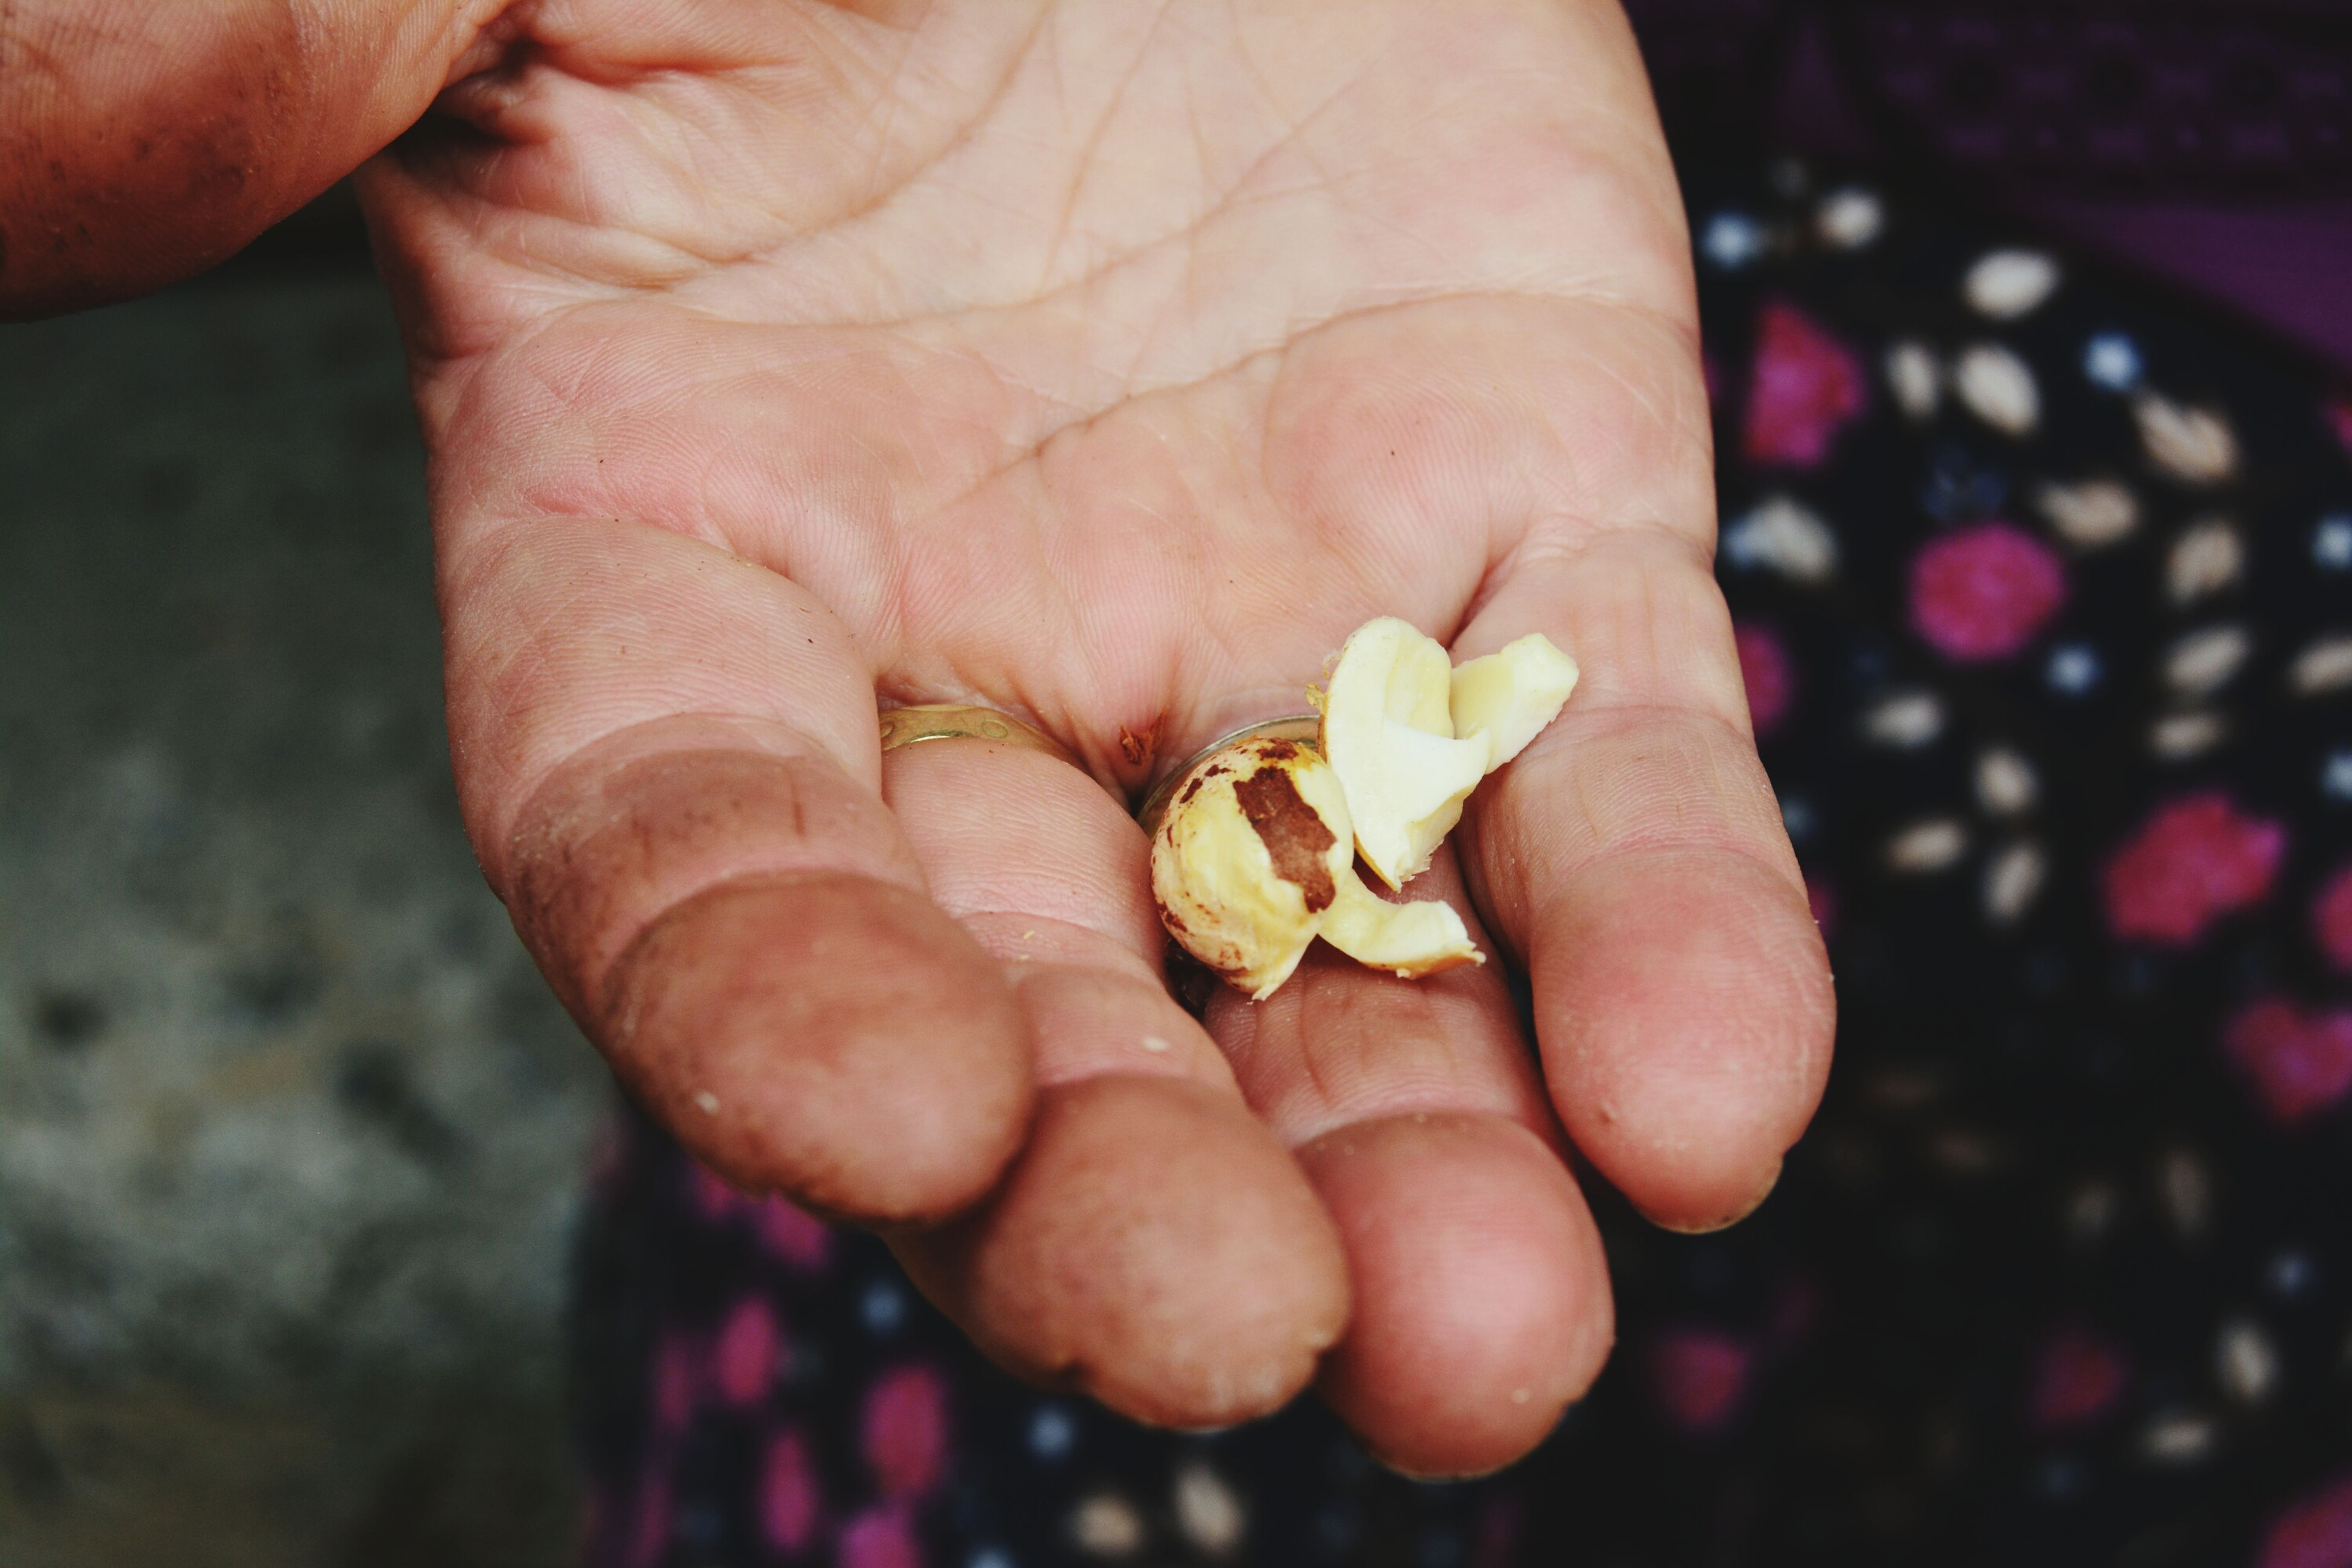 person, holding, freshness, human finger, part of, close-up, cropped, unrecognizable person, food and drink, food, flower, focus on foreground, fragility, healthy eating, nature, new life, fruit